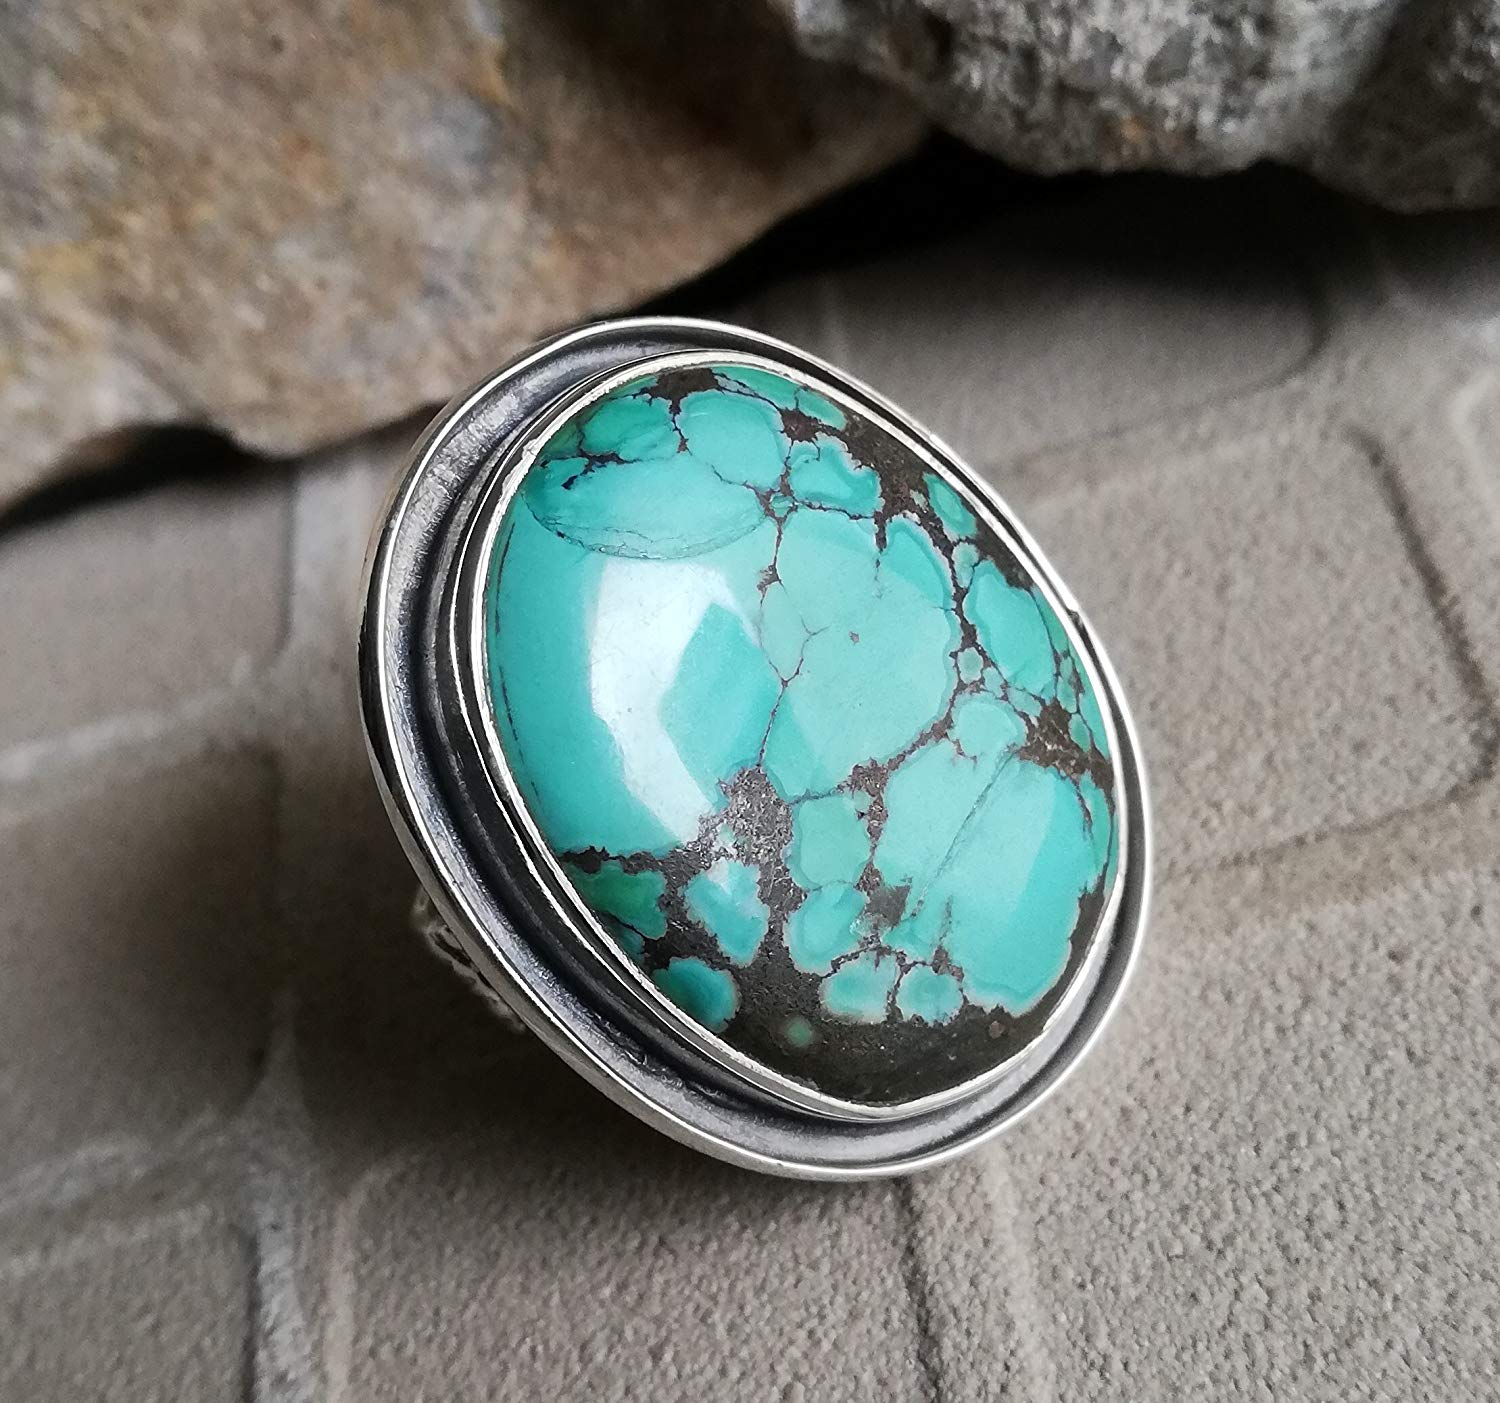 Natural Turquoise Ring, 925 Sterling Silver, Wide Band Ring, Celebrated Gift, Fascinating Ring, Hypoallergenic Ring, Southwestern Ring, Personalised Ring, Classic Elegance Ring, Boho, US All Size Ring